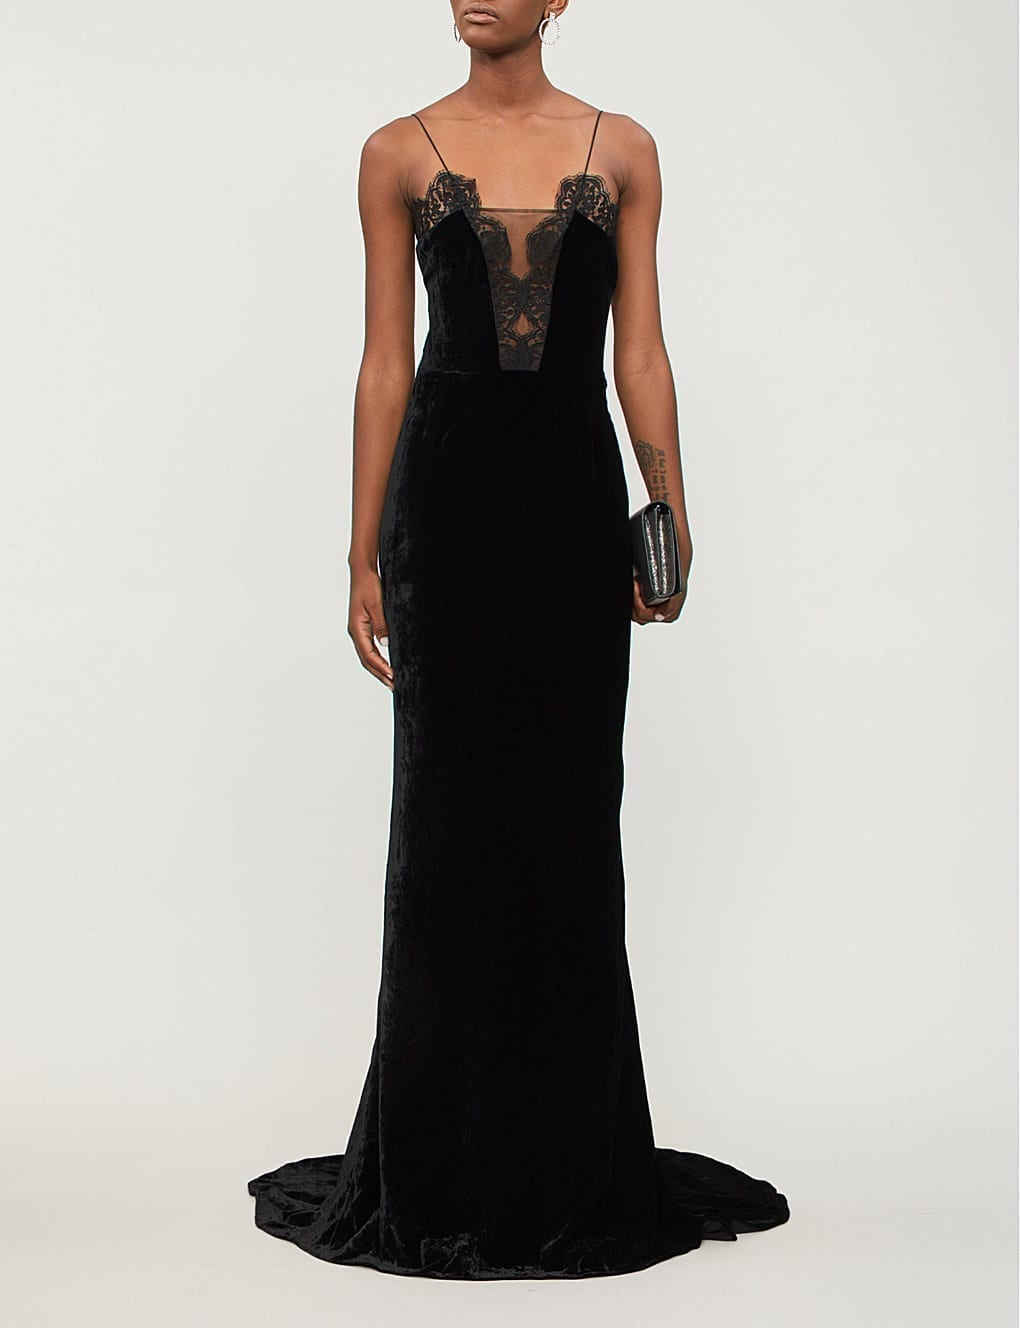 STELLA MCCARTNEY Get Lucky Fitted Velvet Black Gown